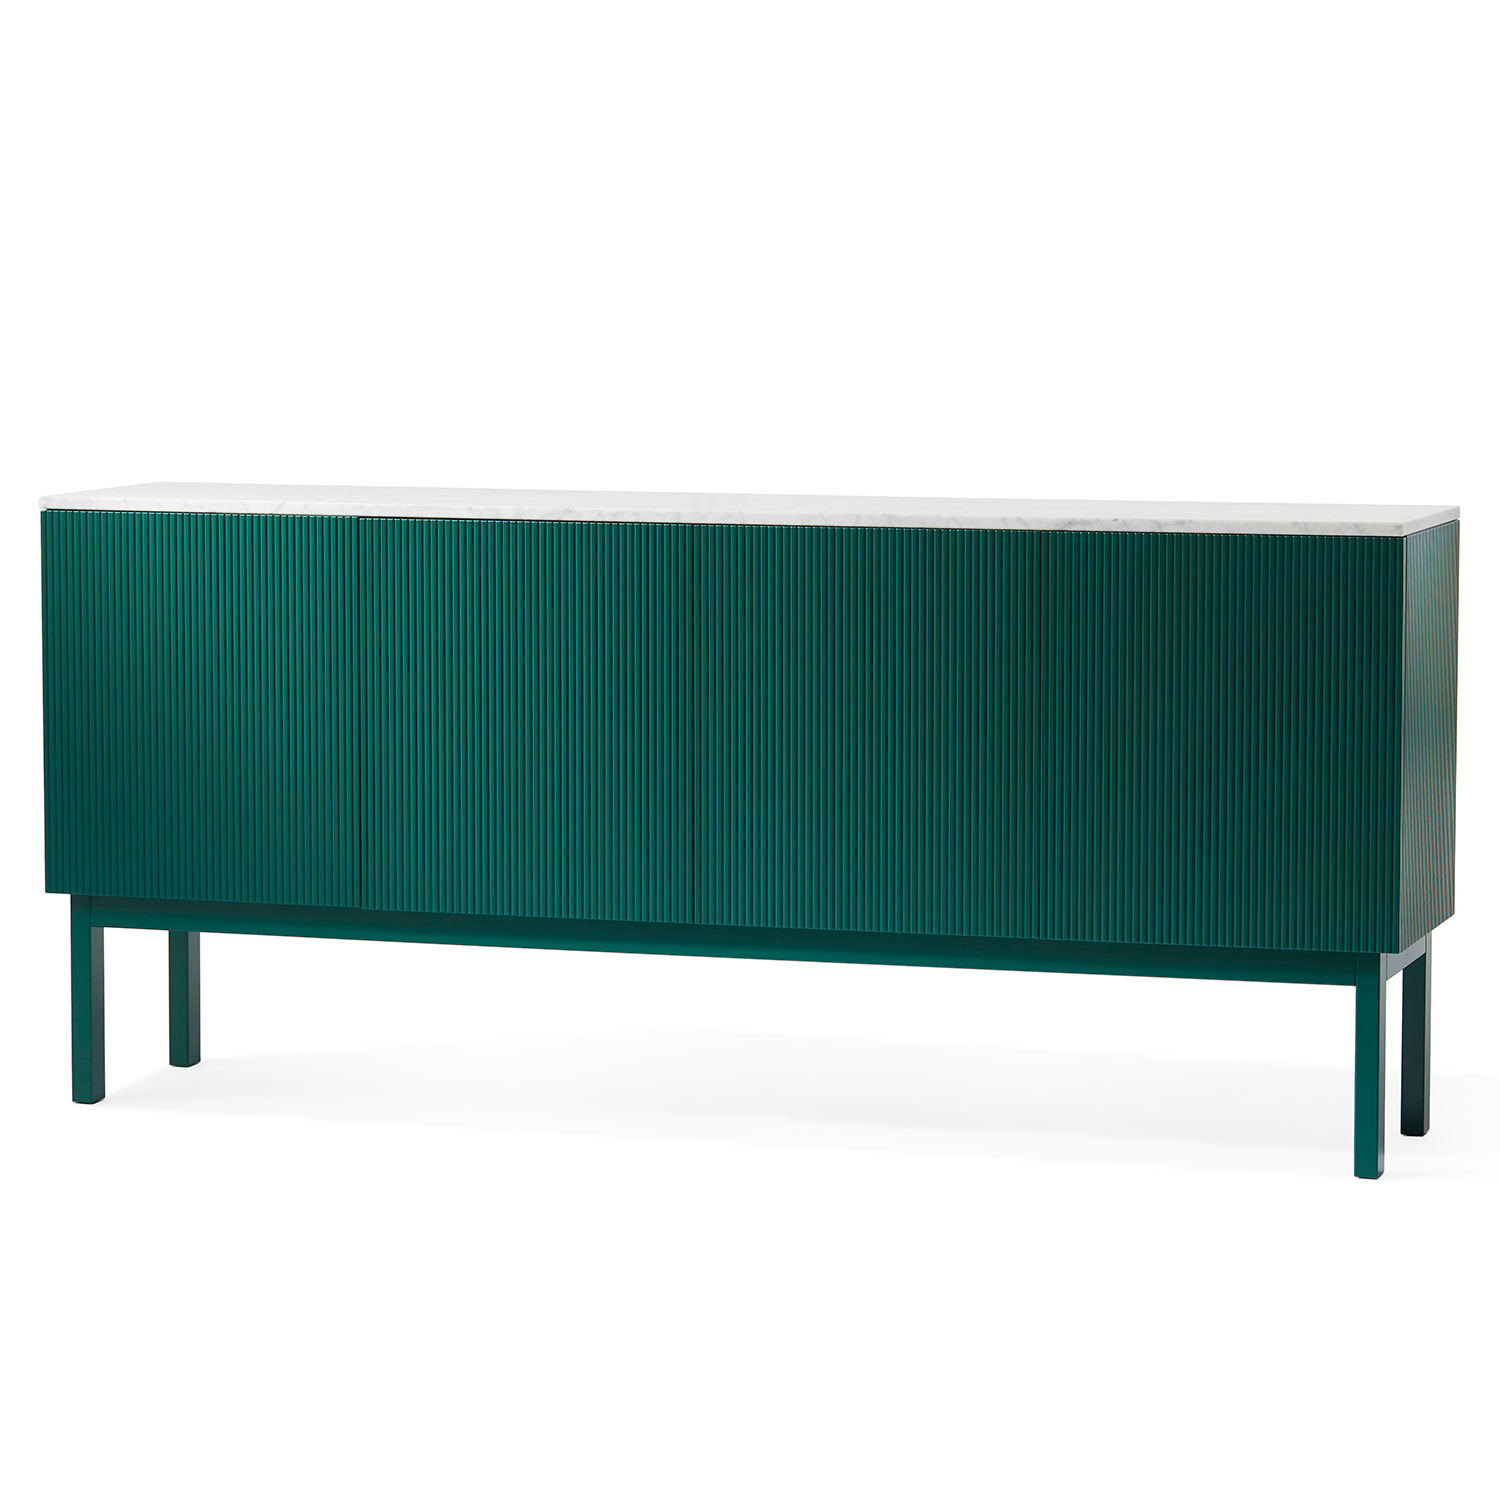 Beam Cabinet, Green/Green Marble